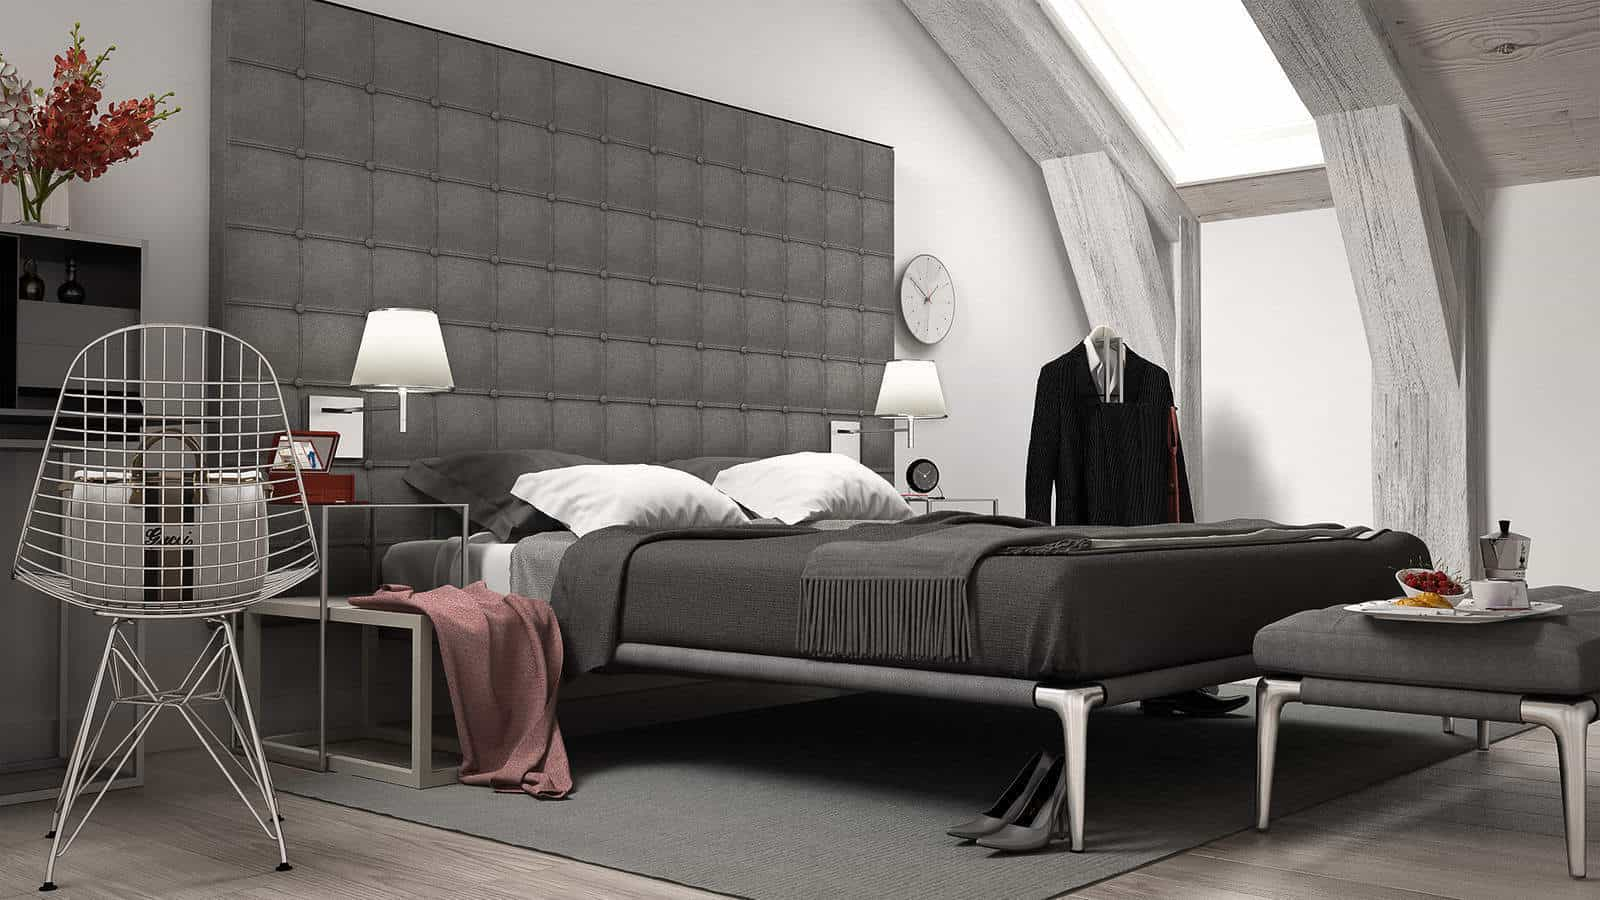 Loft minimal bedroom, interiour design. 3d illustration